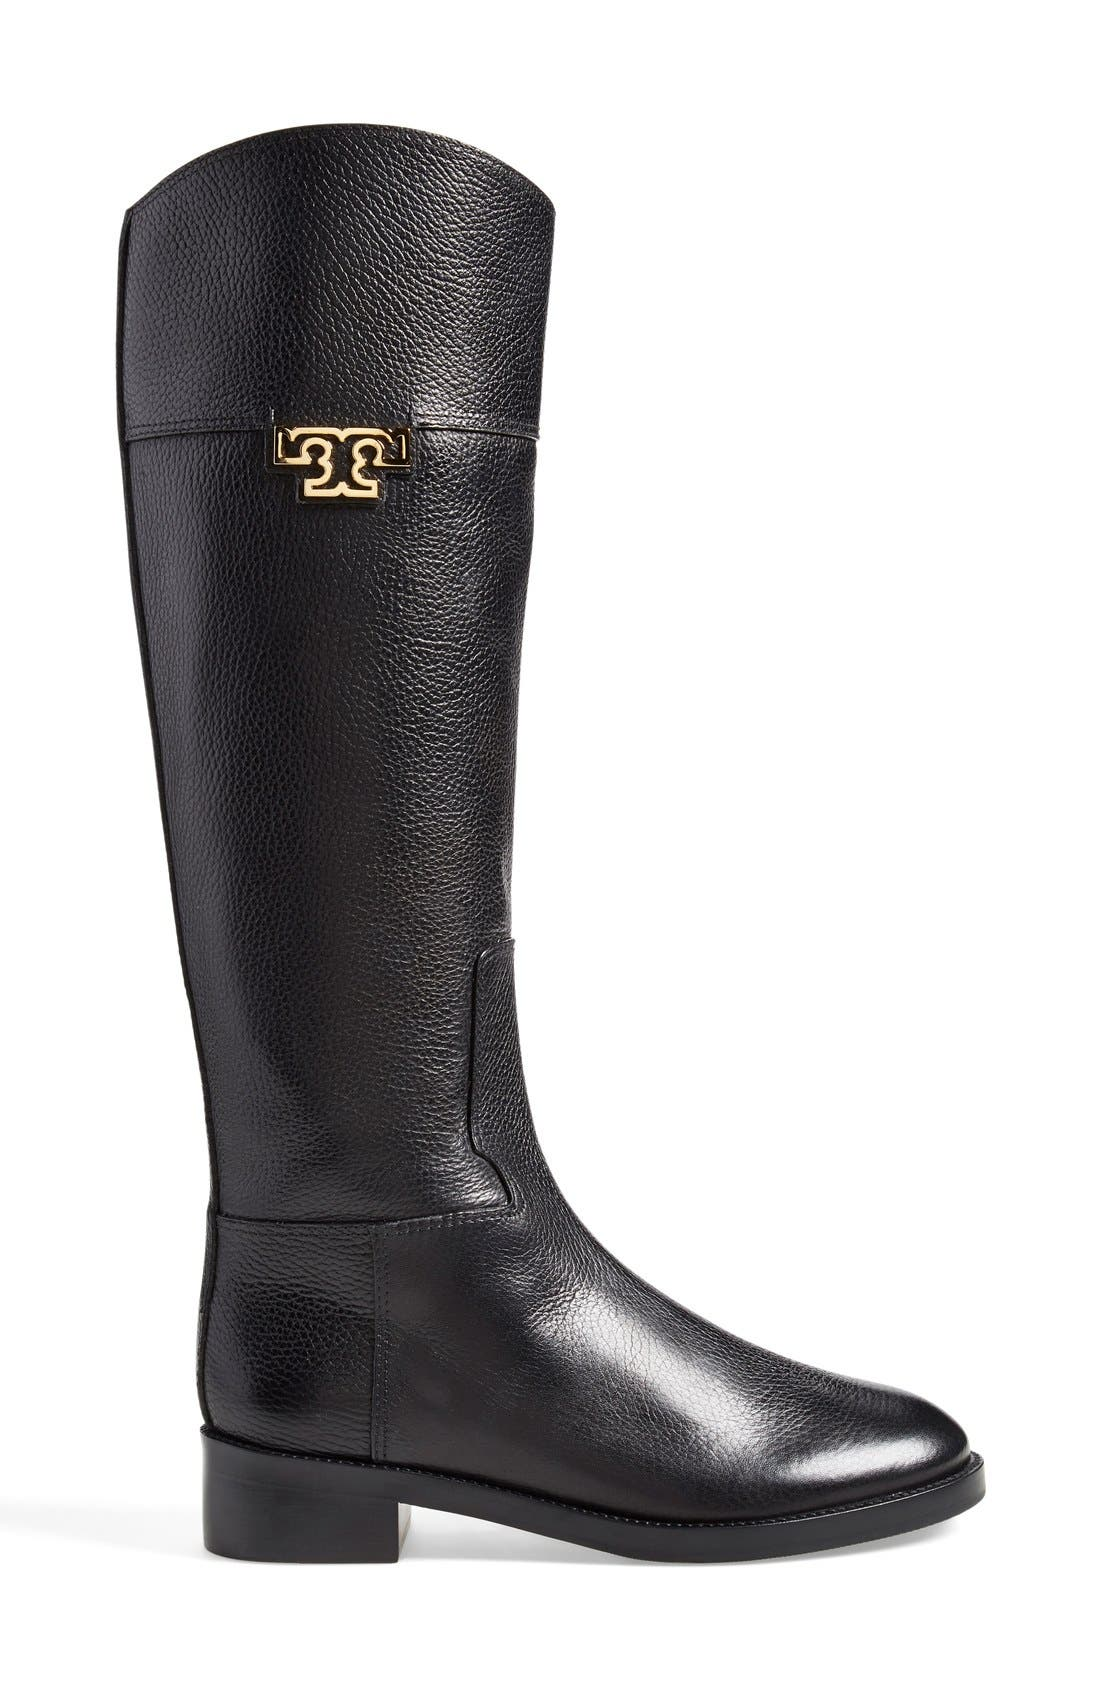 Alternate Image 4  - Tory Burch 'Joanna' Riding Boot (Women) (Nordstrom Exclusive)